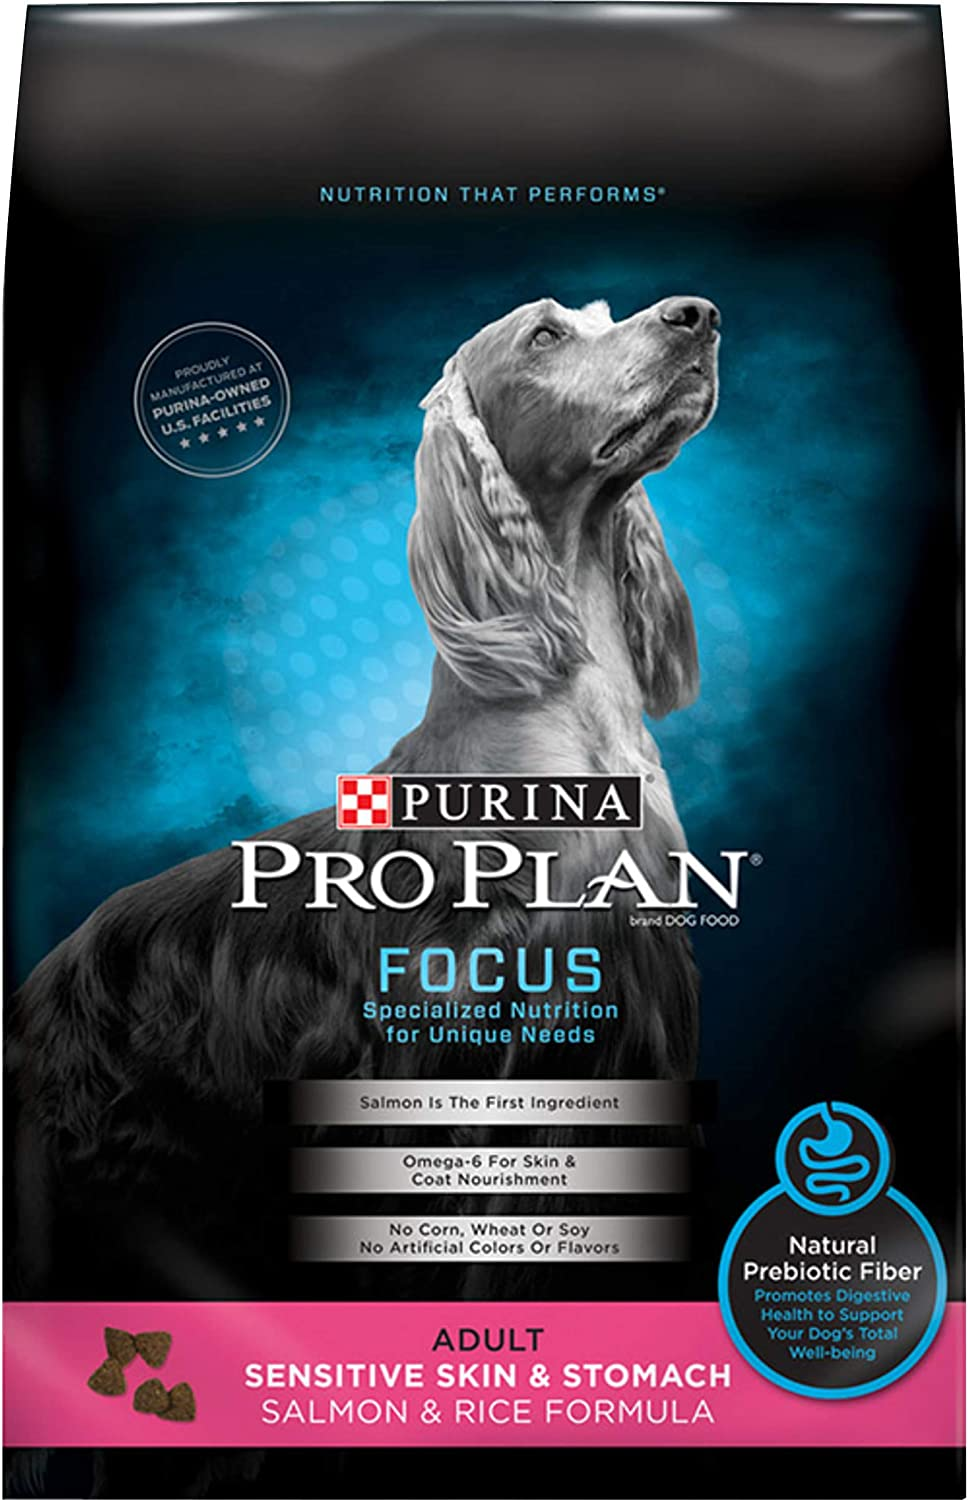 Purina Pro Plan Sensitive Skin & Stomach